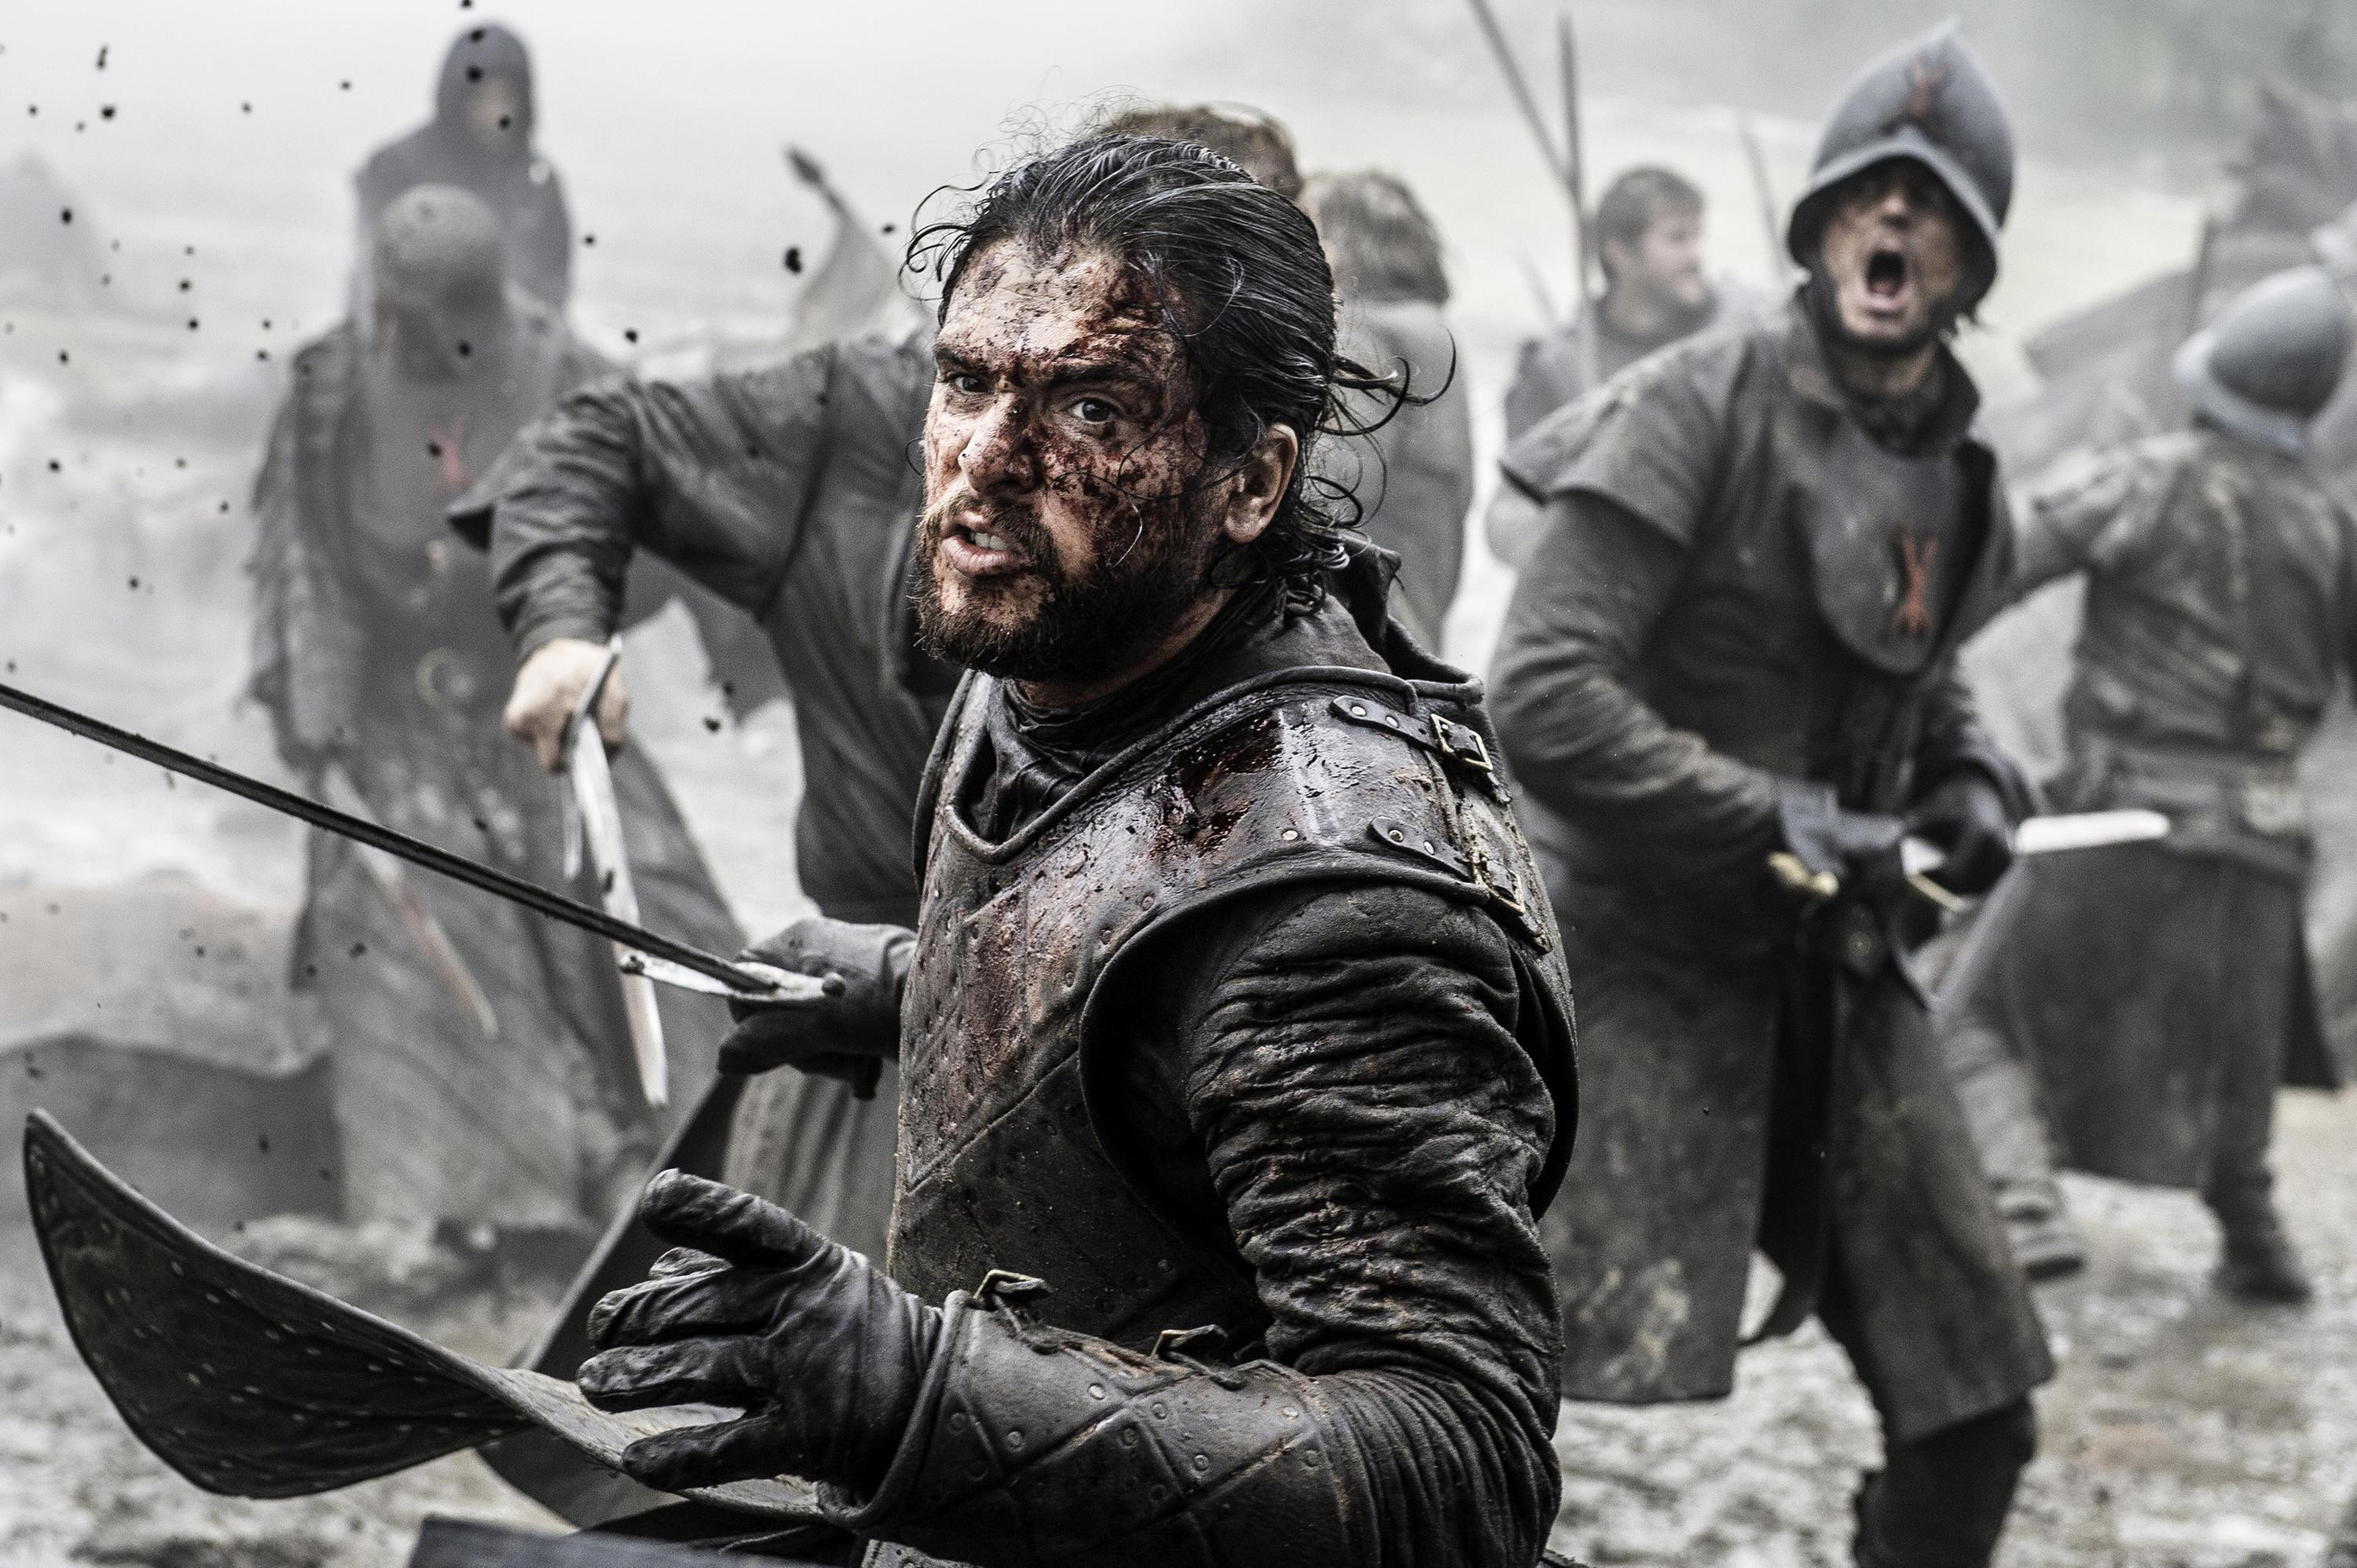 Bild zu Game of Thrones, Westeros, Krieg, Jon Snow